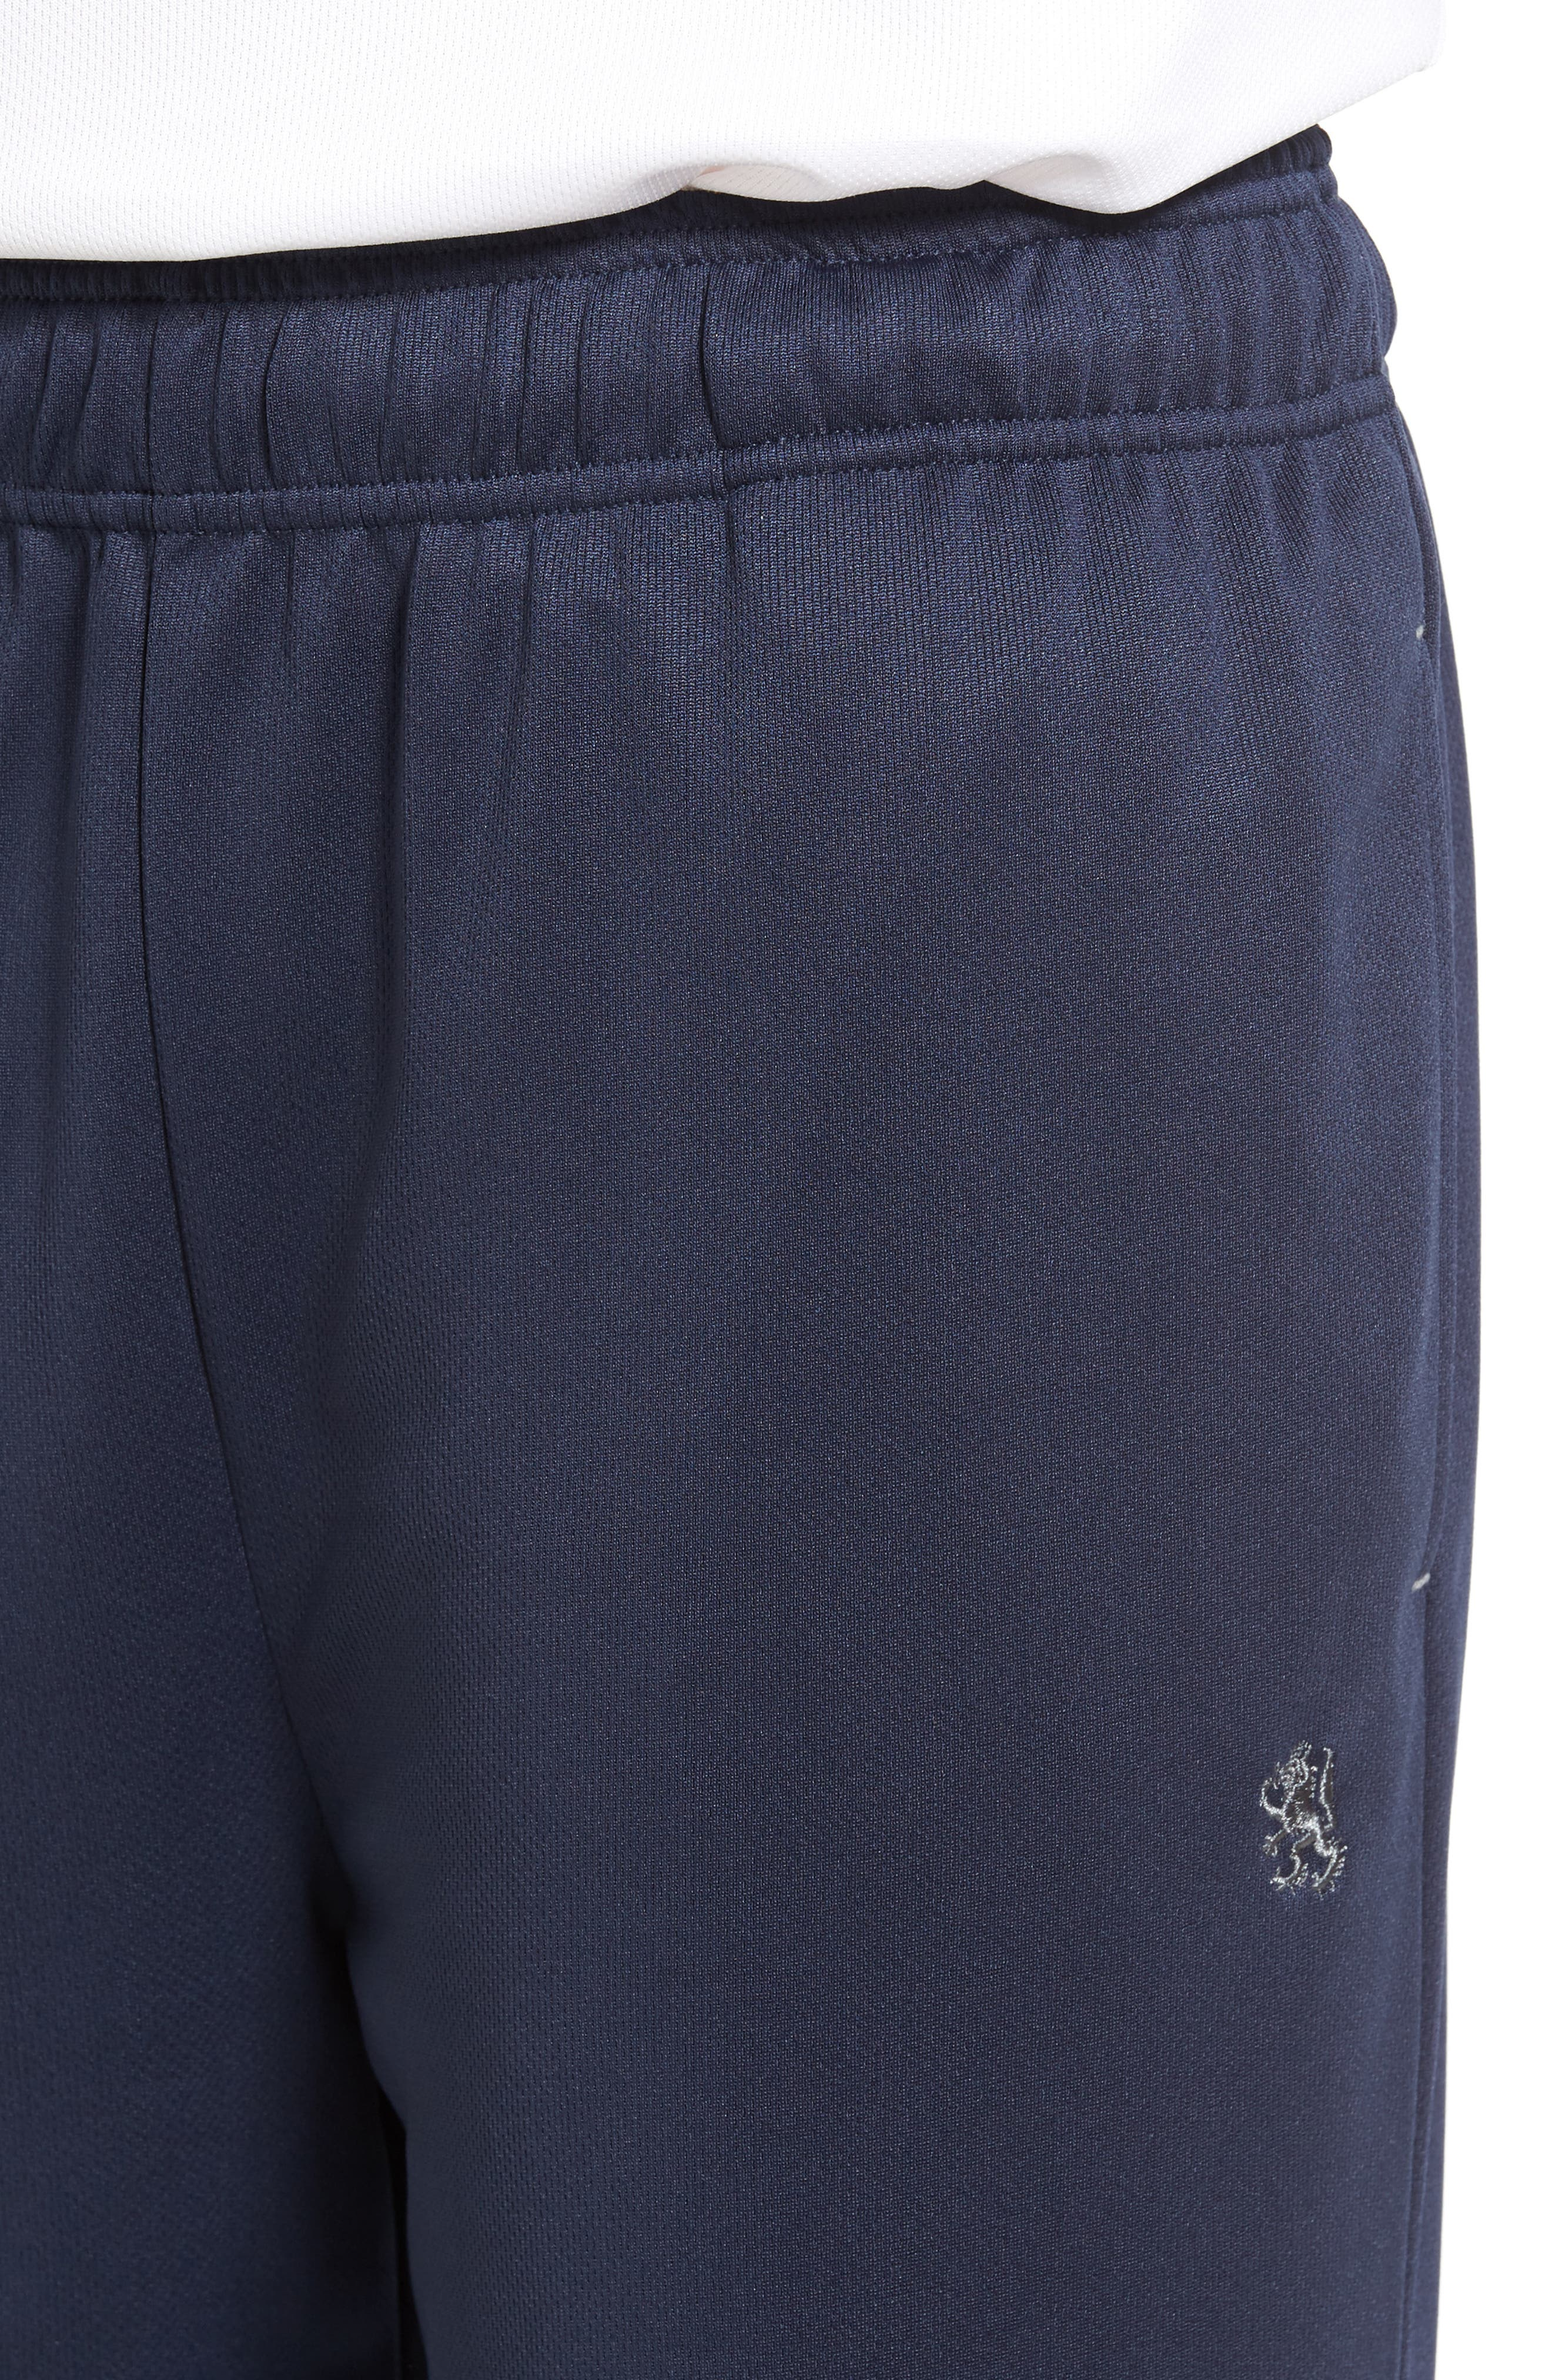 Work Out Lounge Pants,                             Alternate thumbnail 12, color,